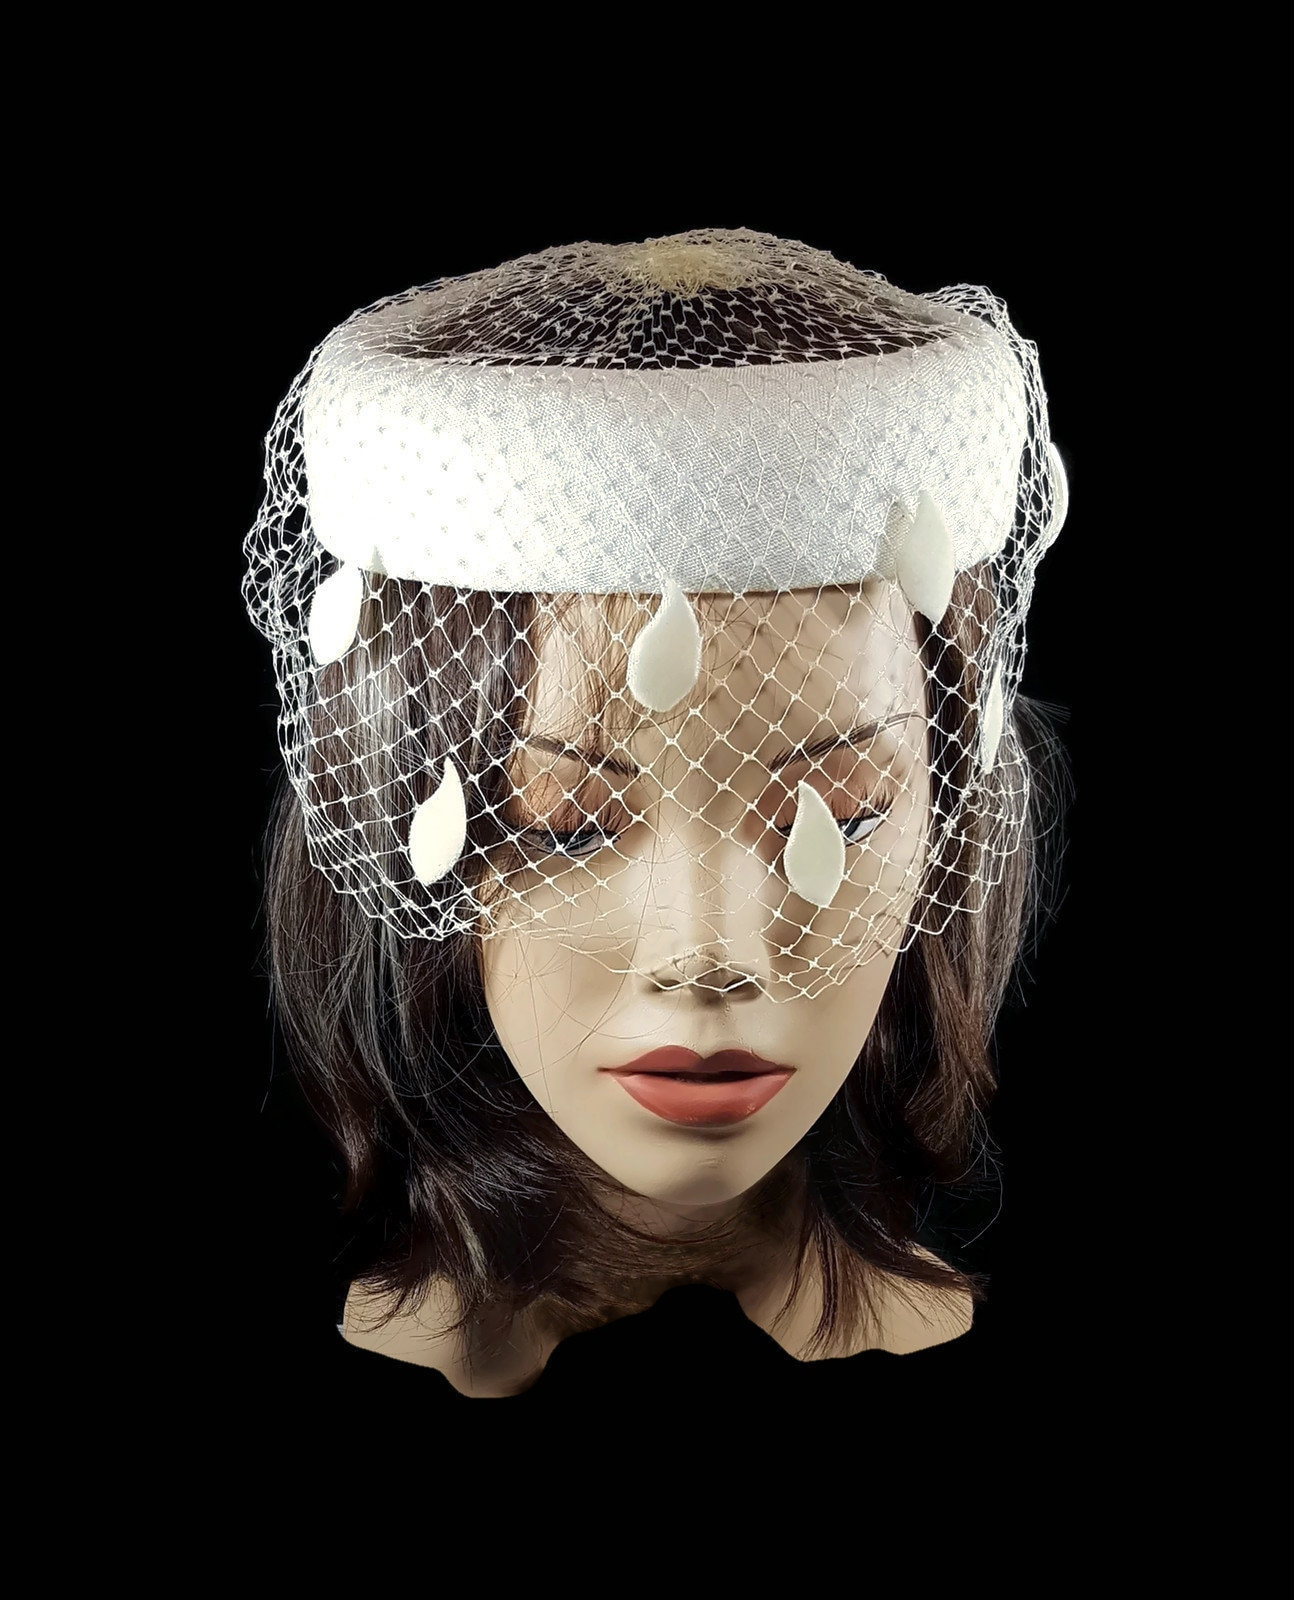 f7781de4b Vintage Fascinator Pillbox White Hat with Veil Teardrop or Raindrop Accents  Tea Party or Church Hat